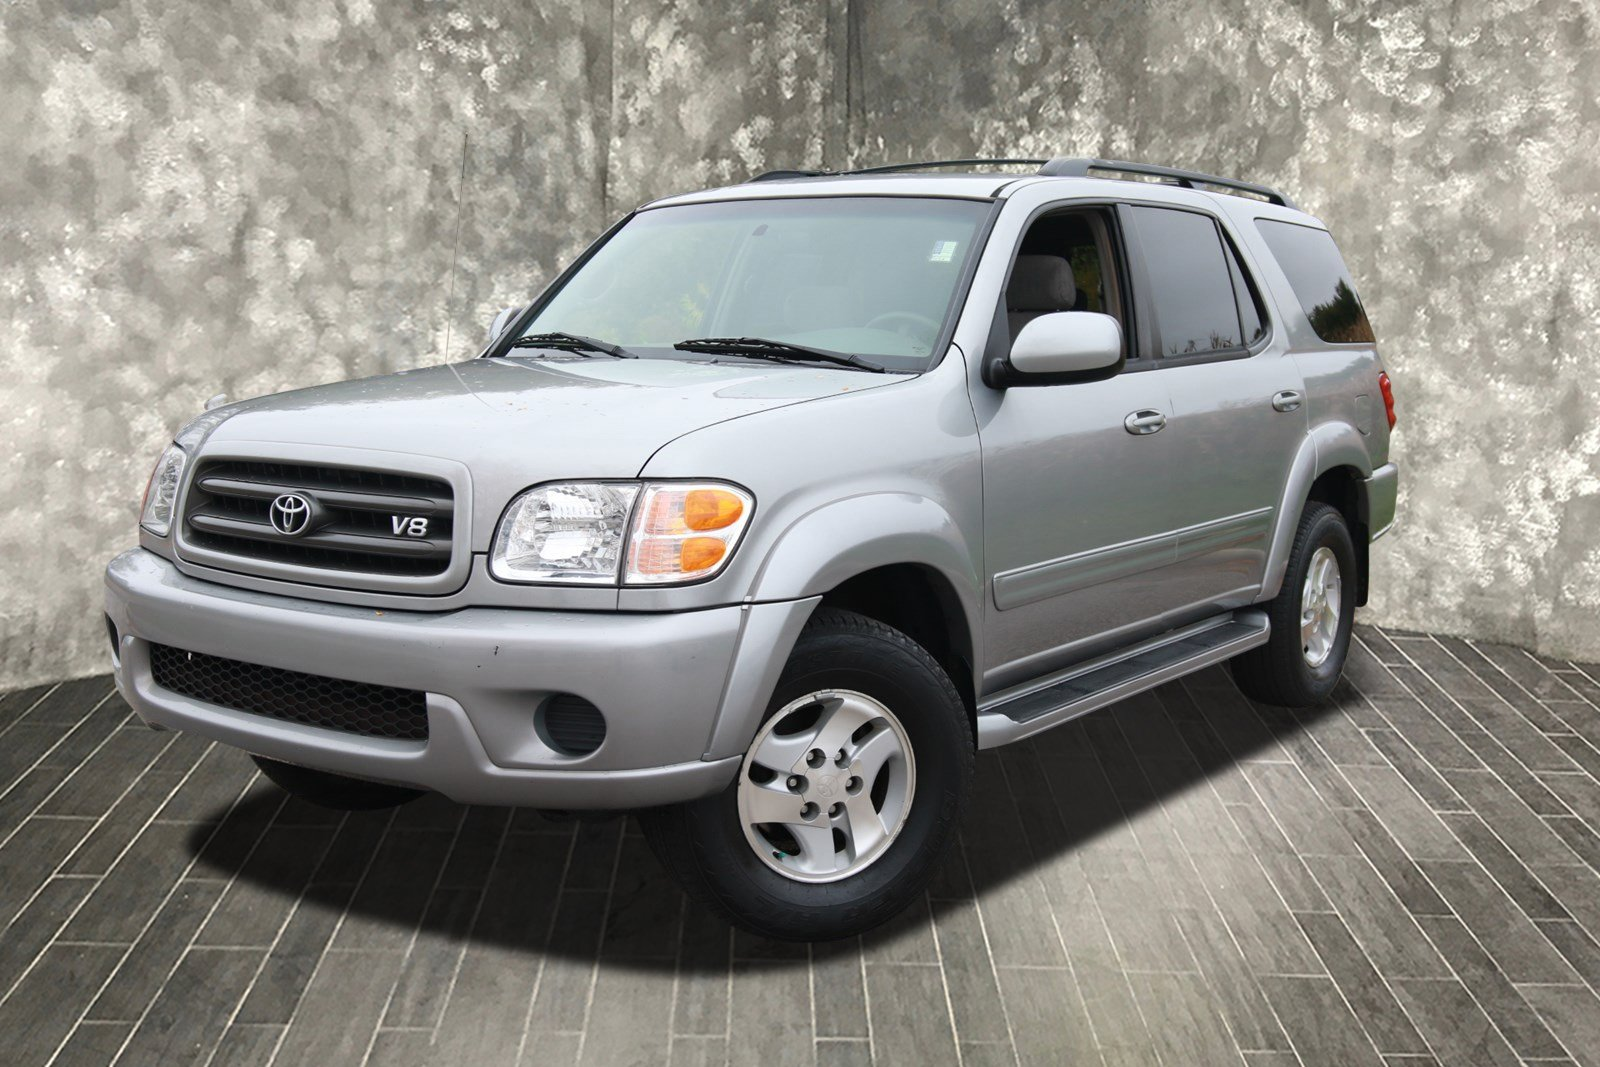 Pre Owned 2003 Toyota Sequoia Sr5 Sport Utility In Portage 9119a Fuel Filter Location